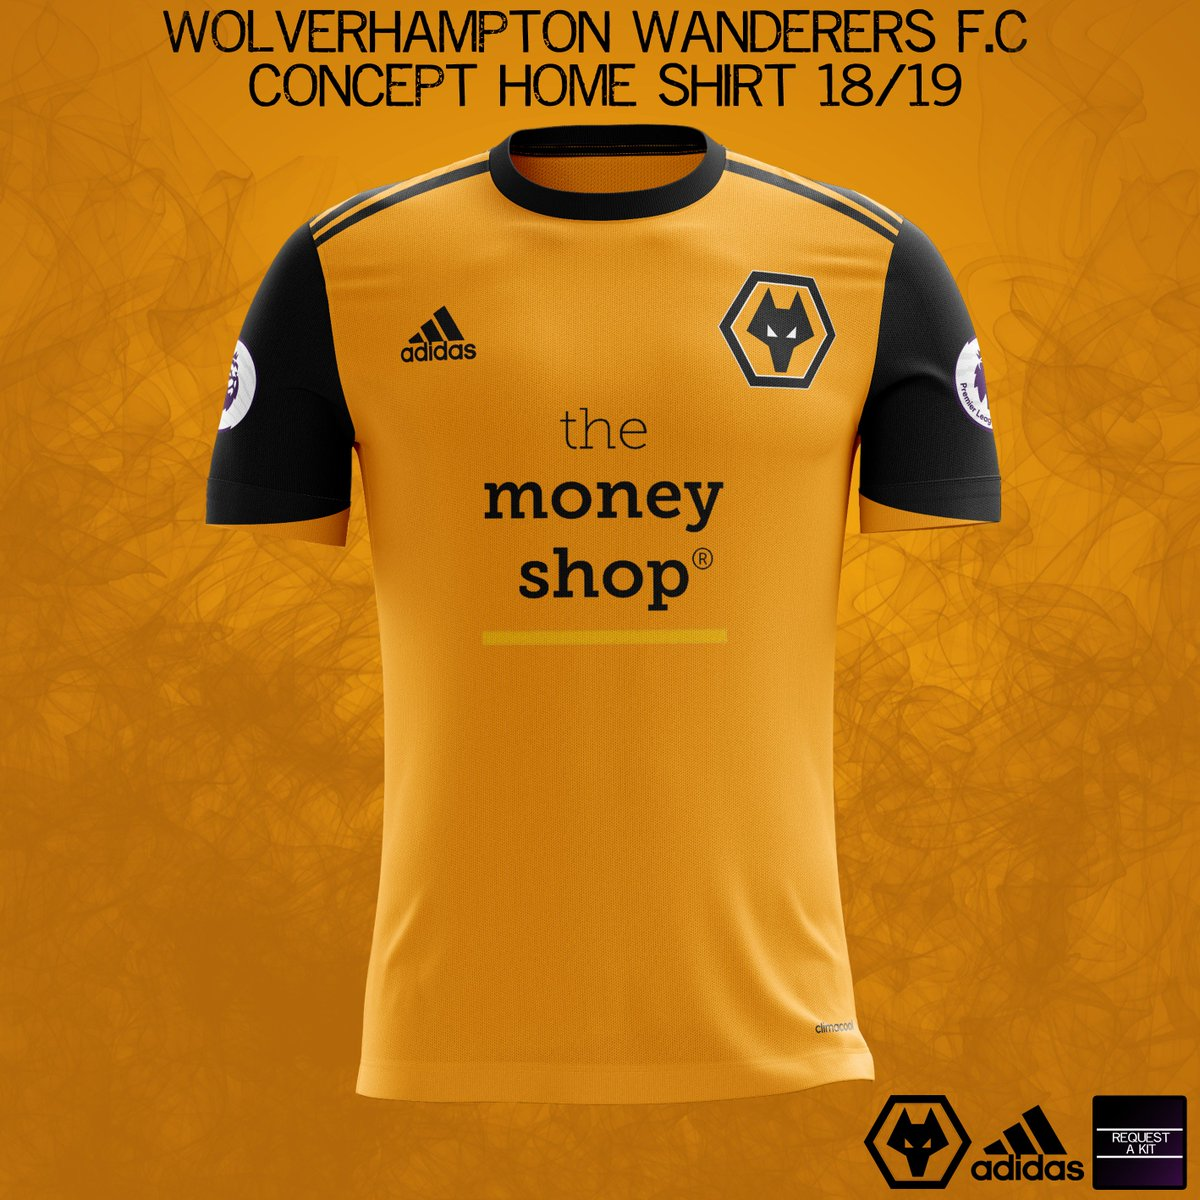 612d428e1 Wolverhampton Wanderers F.C Concept Home and Away Shirts 2018-19 (requested  by  LuckyHookey)  wwfcpic.twitter.com lEH0l1g9QC